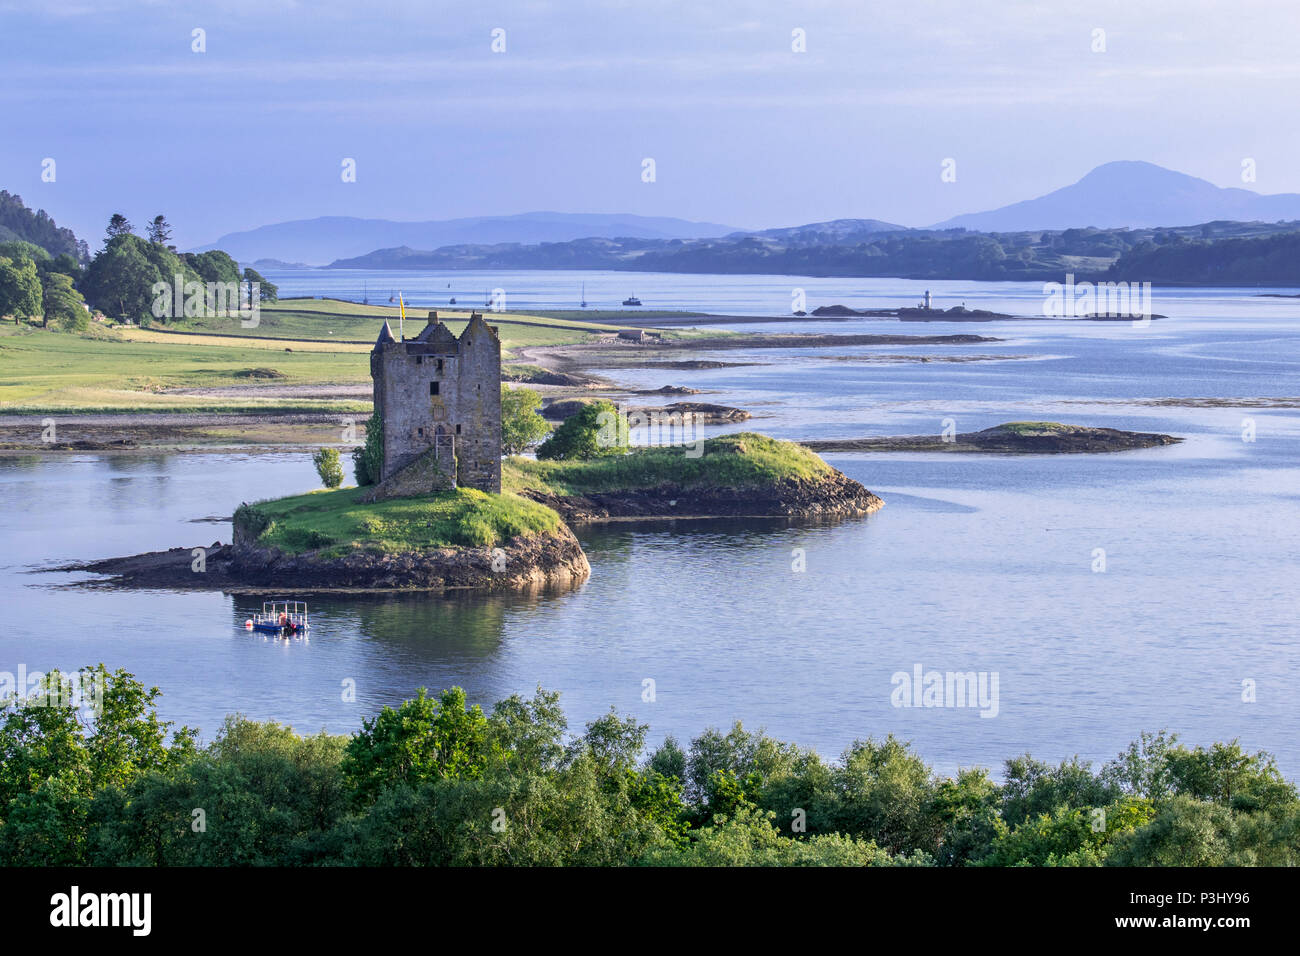 Castle Stalker, medieval four-story tower house / keep in Loch Laich, inlet off Loch Linnhe near Port Appin, Argyll, Scotland, UK - Stock Image